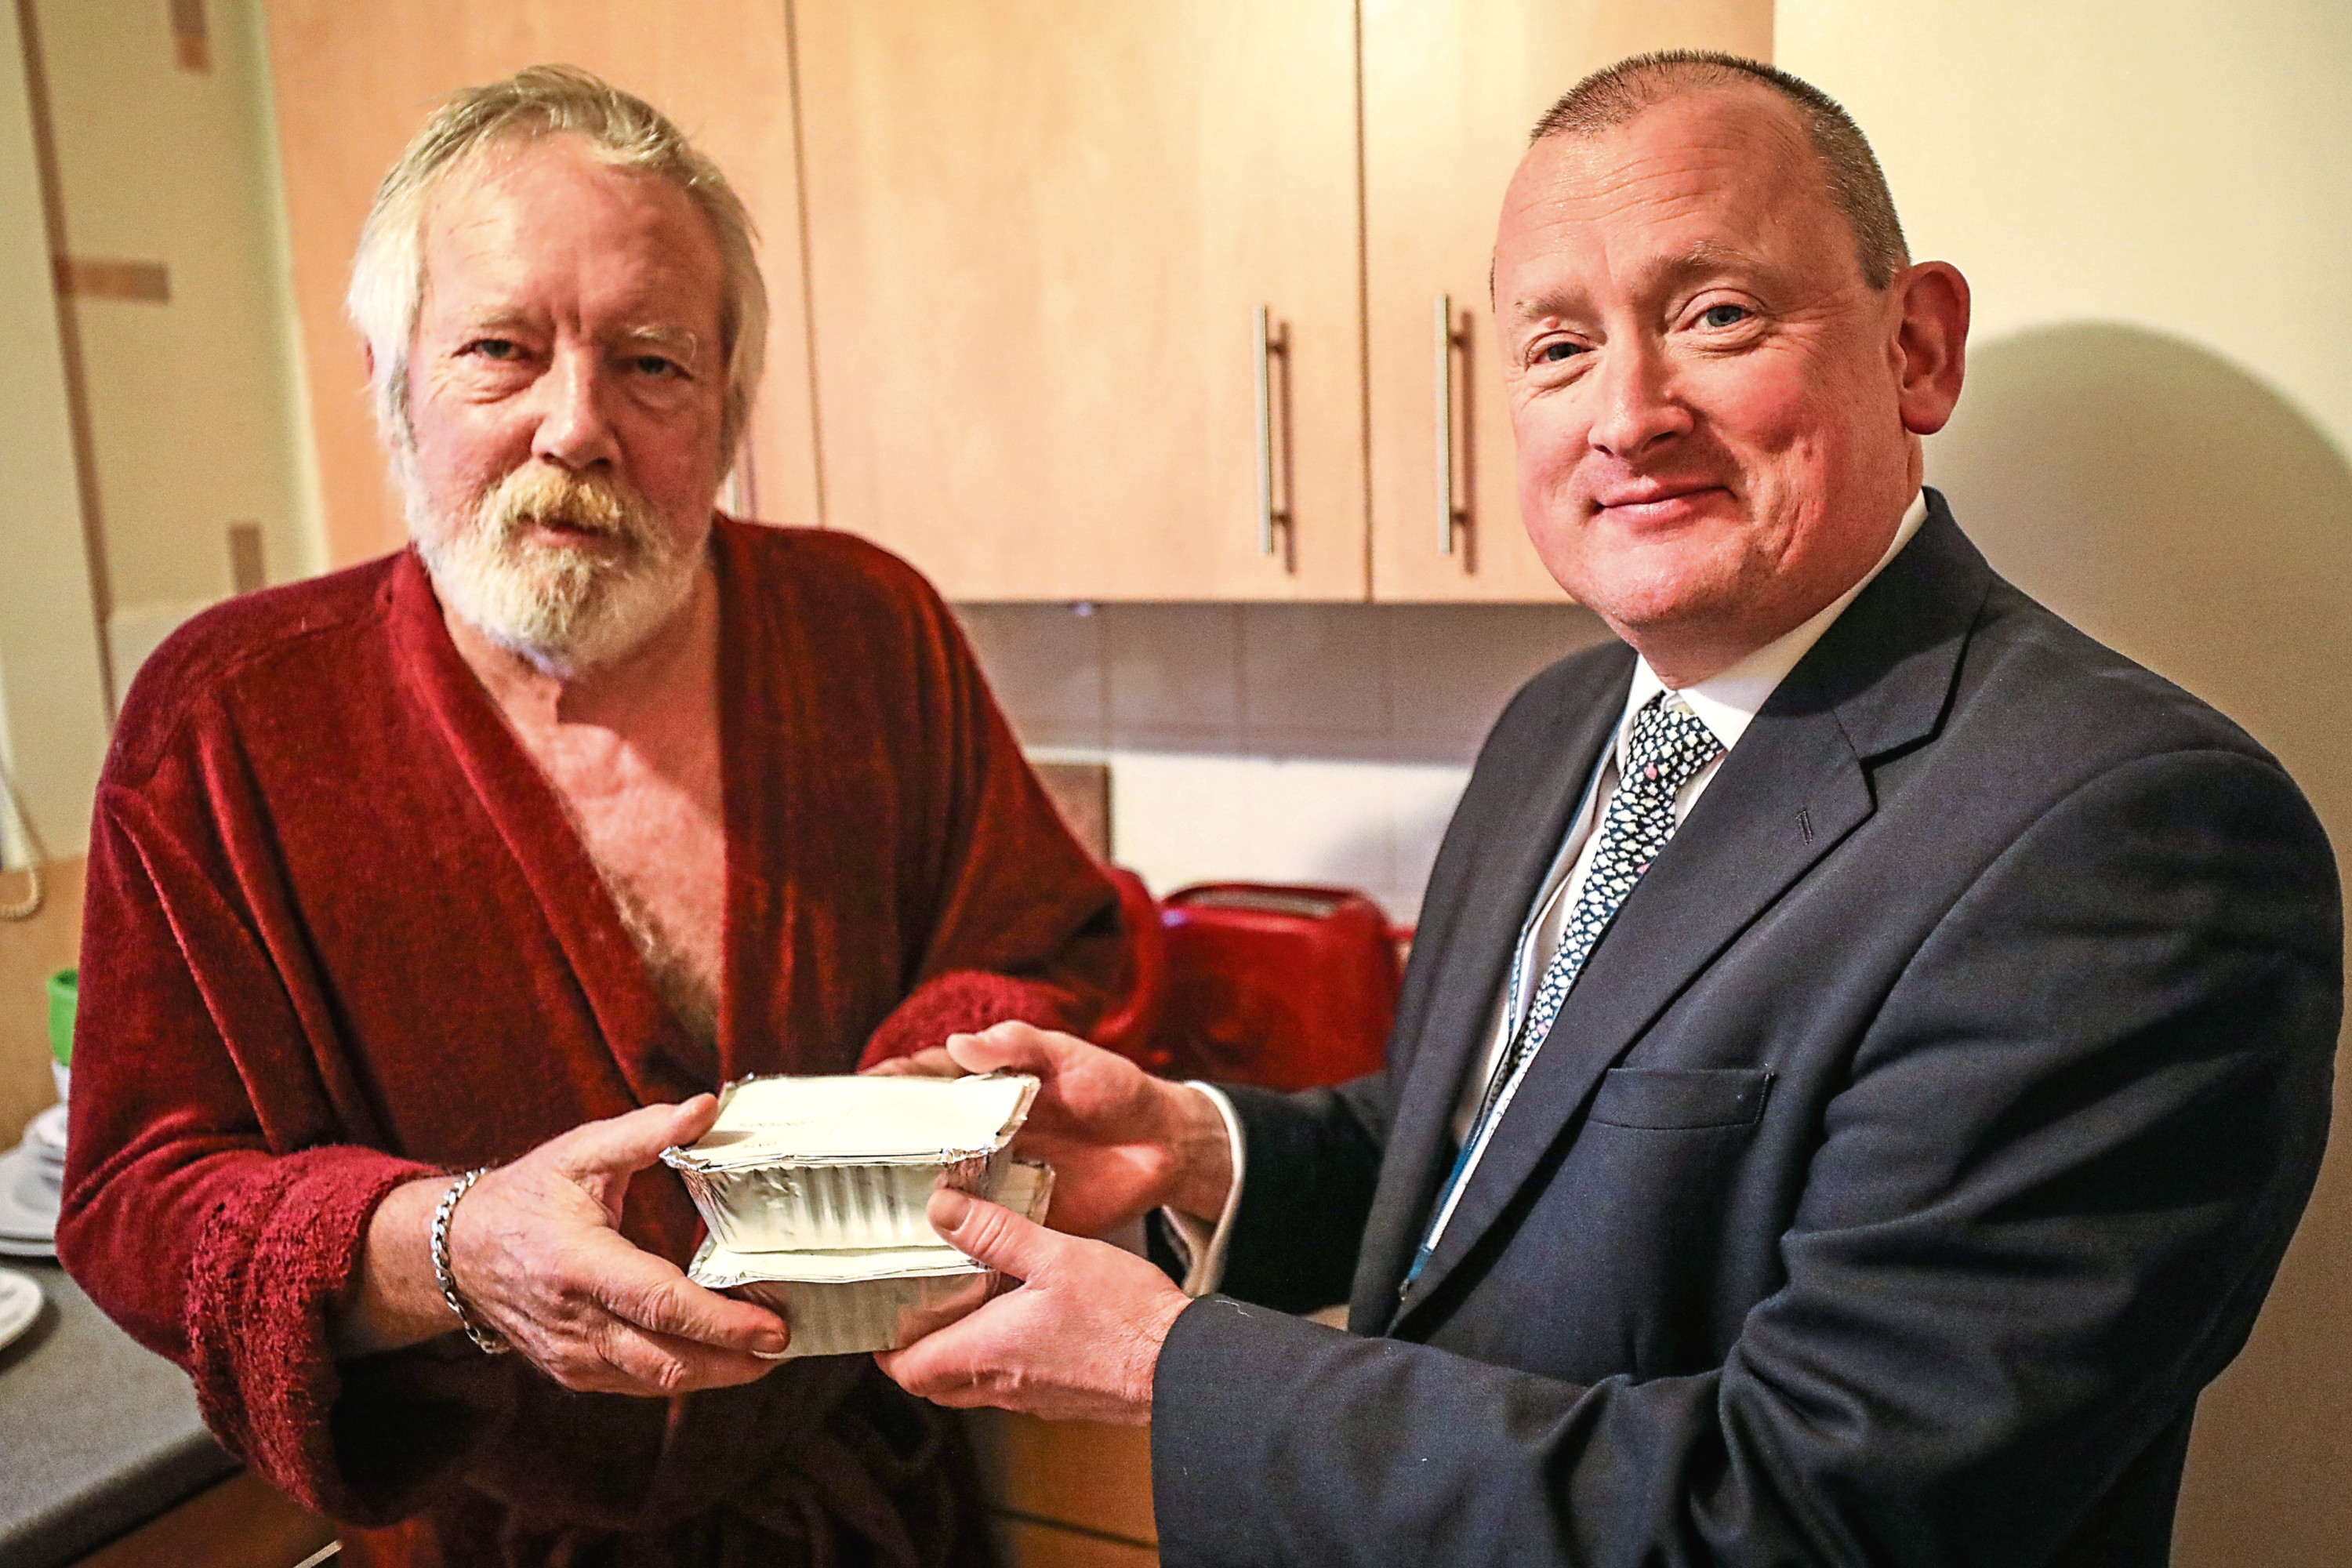 Joseph O'Neill and Neil MacKinnon have formed a firm friendship thanks to volunteer scheme Meal Makers